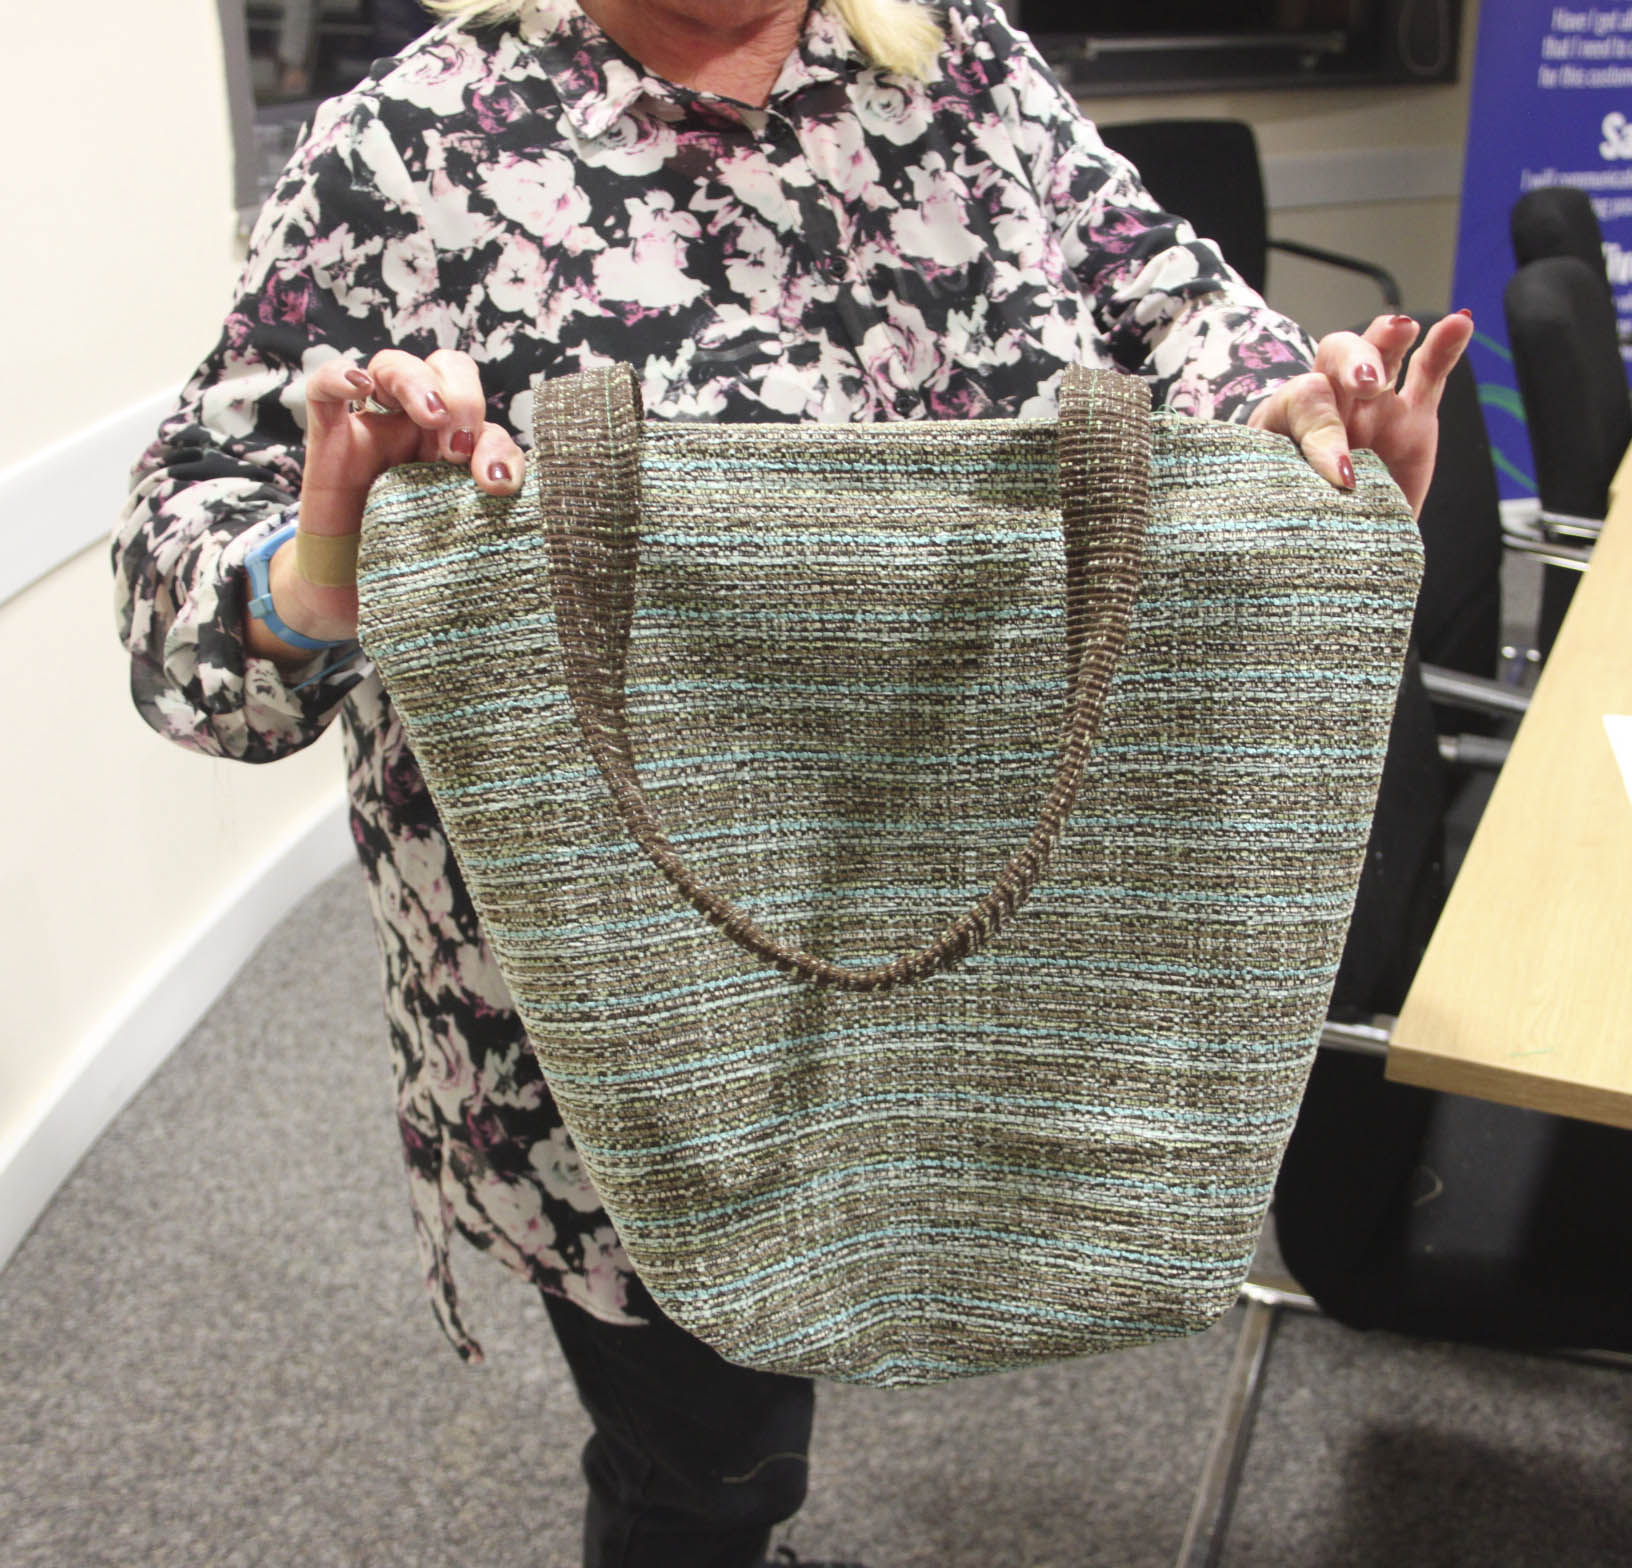 How To Profit From A Home Sewing Business: First Sewing Project: Tote Bag [20.02.16]